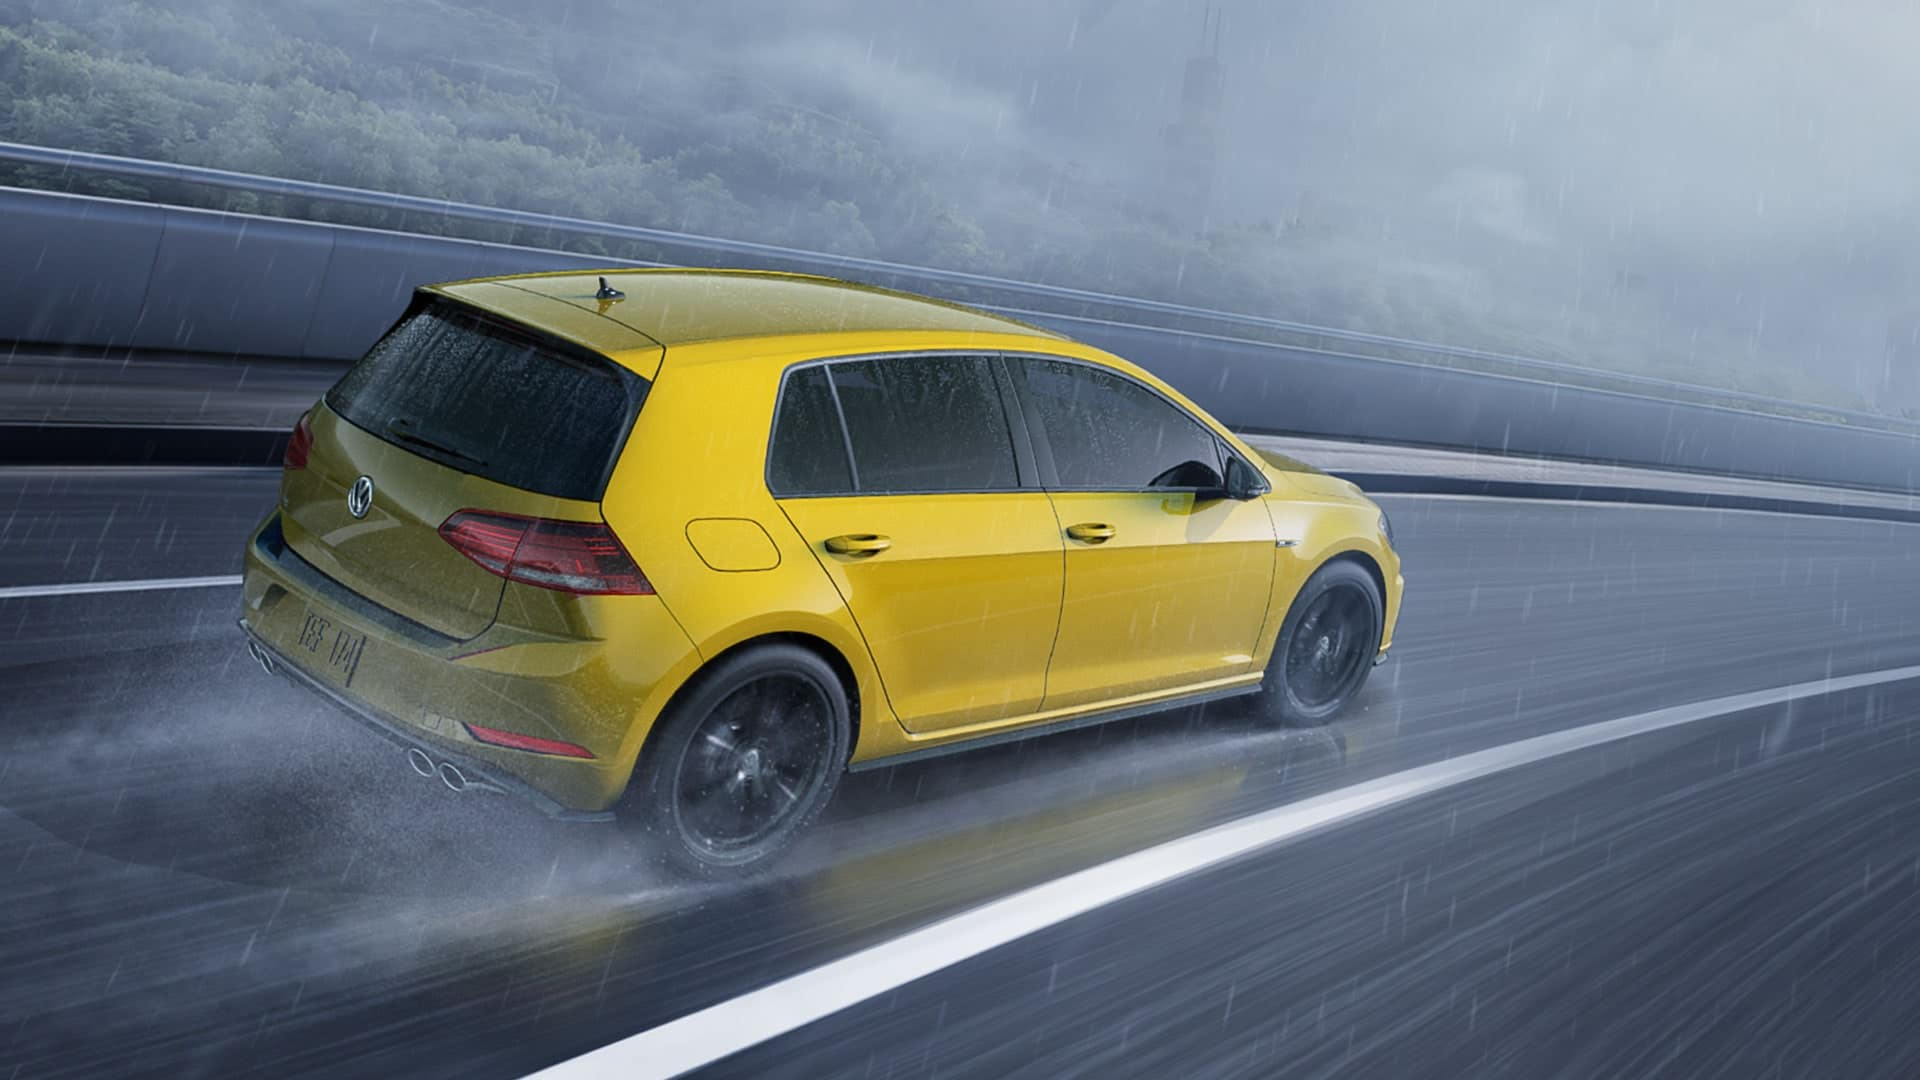 A yellow 2019 VW Golf R drives quickly and confidently through the rain.